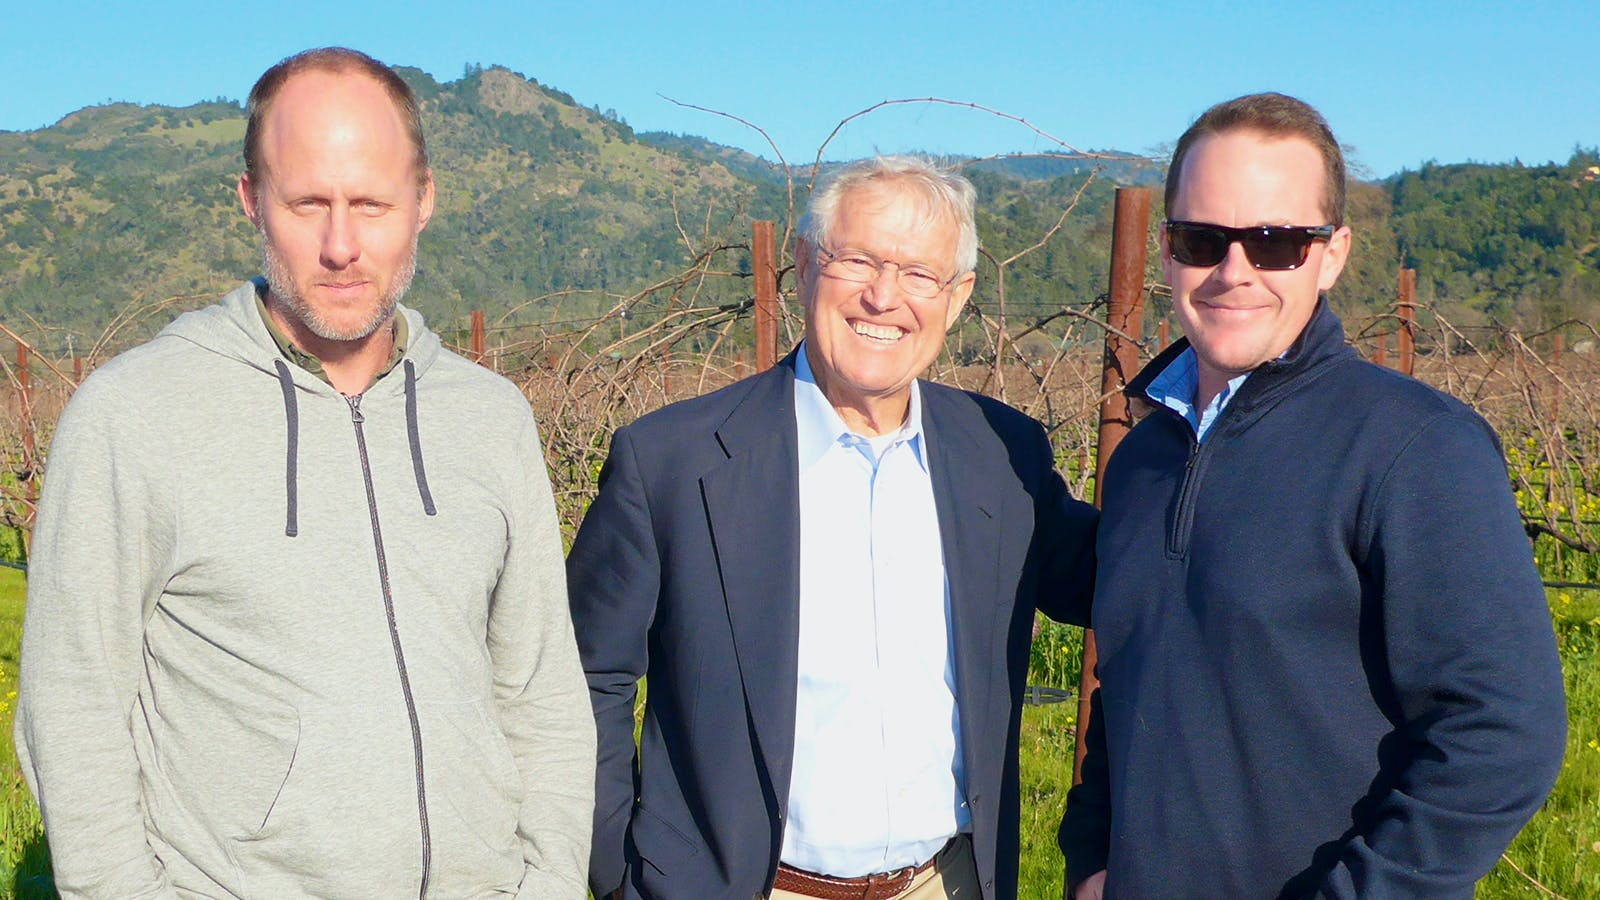 Coach Dick Vermeil Teams Up with Winemaker Thomas Brown